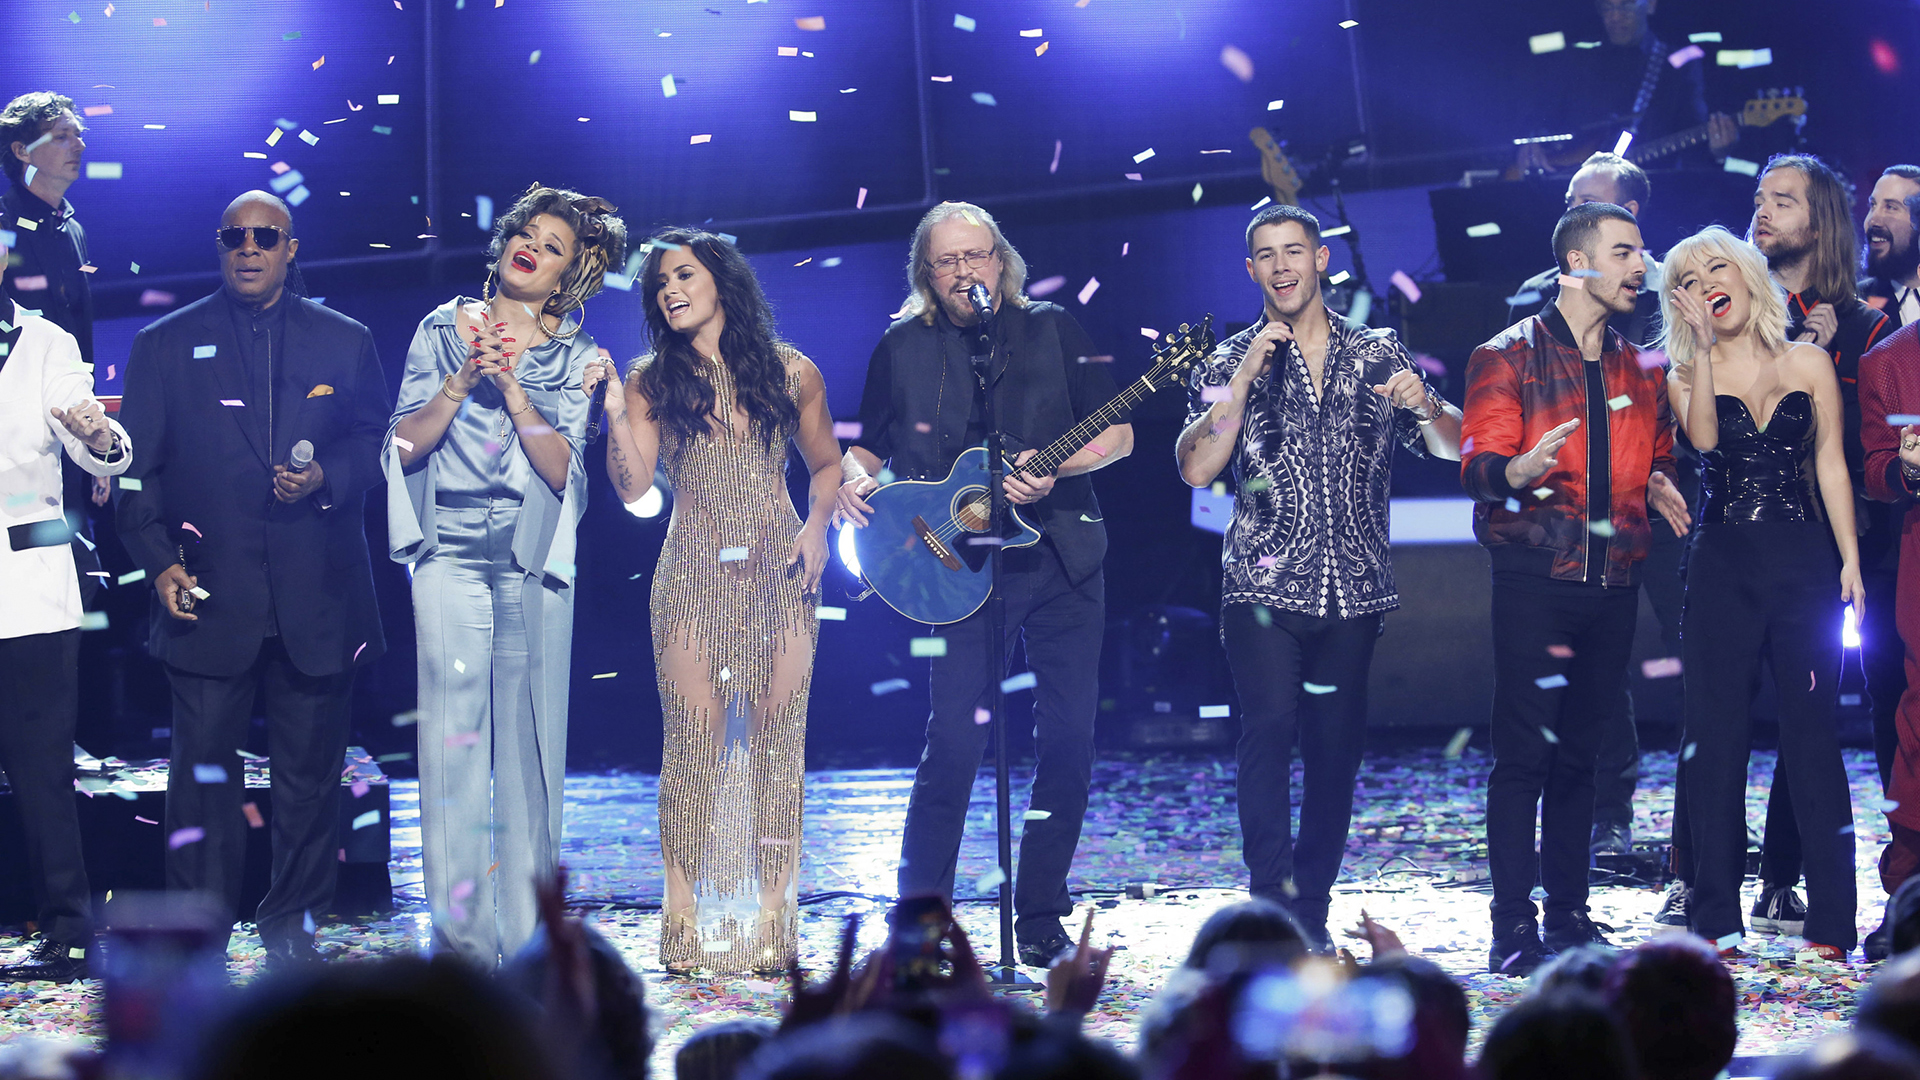 Barry Gibb and a superstar ensemble perform